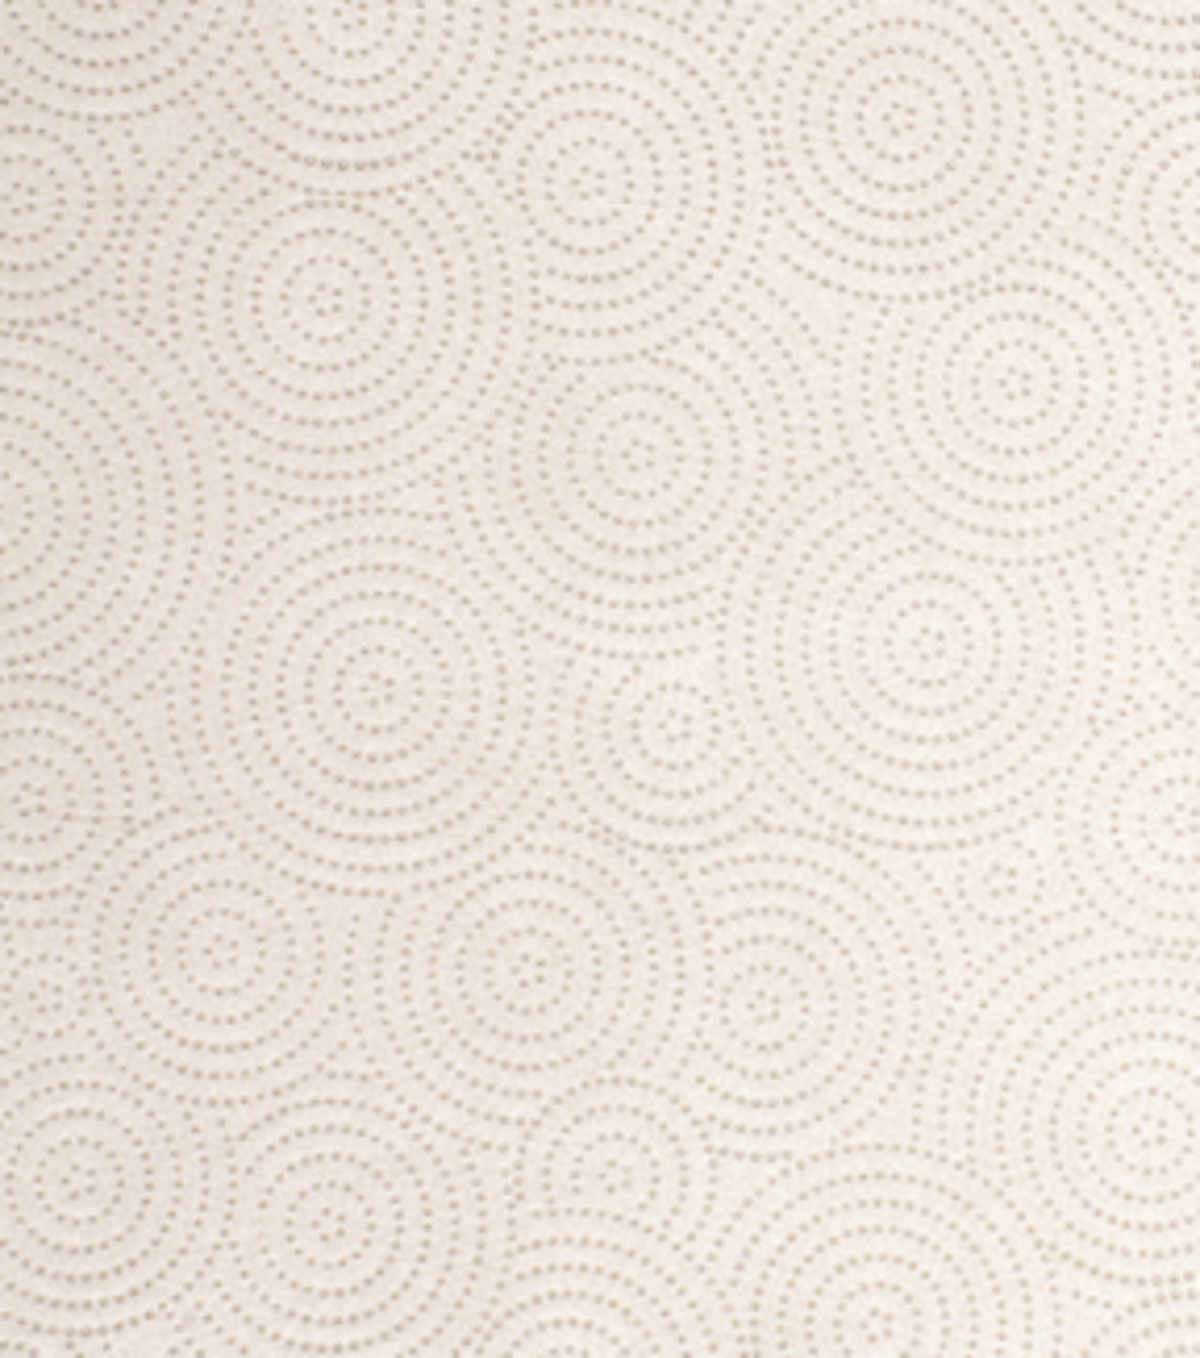 Home Decor 8\u0022x8\u0022 Fabric Swatch-Sta-Kleen Vinyl Cladius Pearl